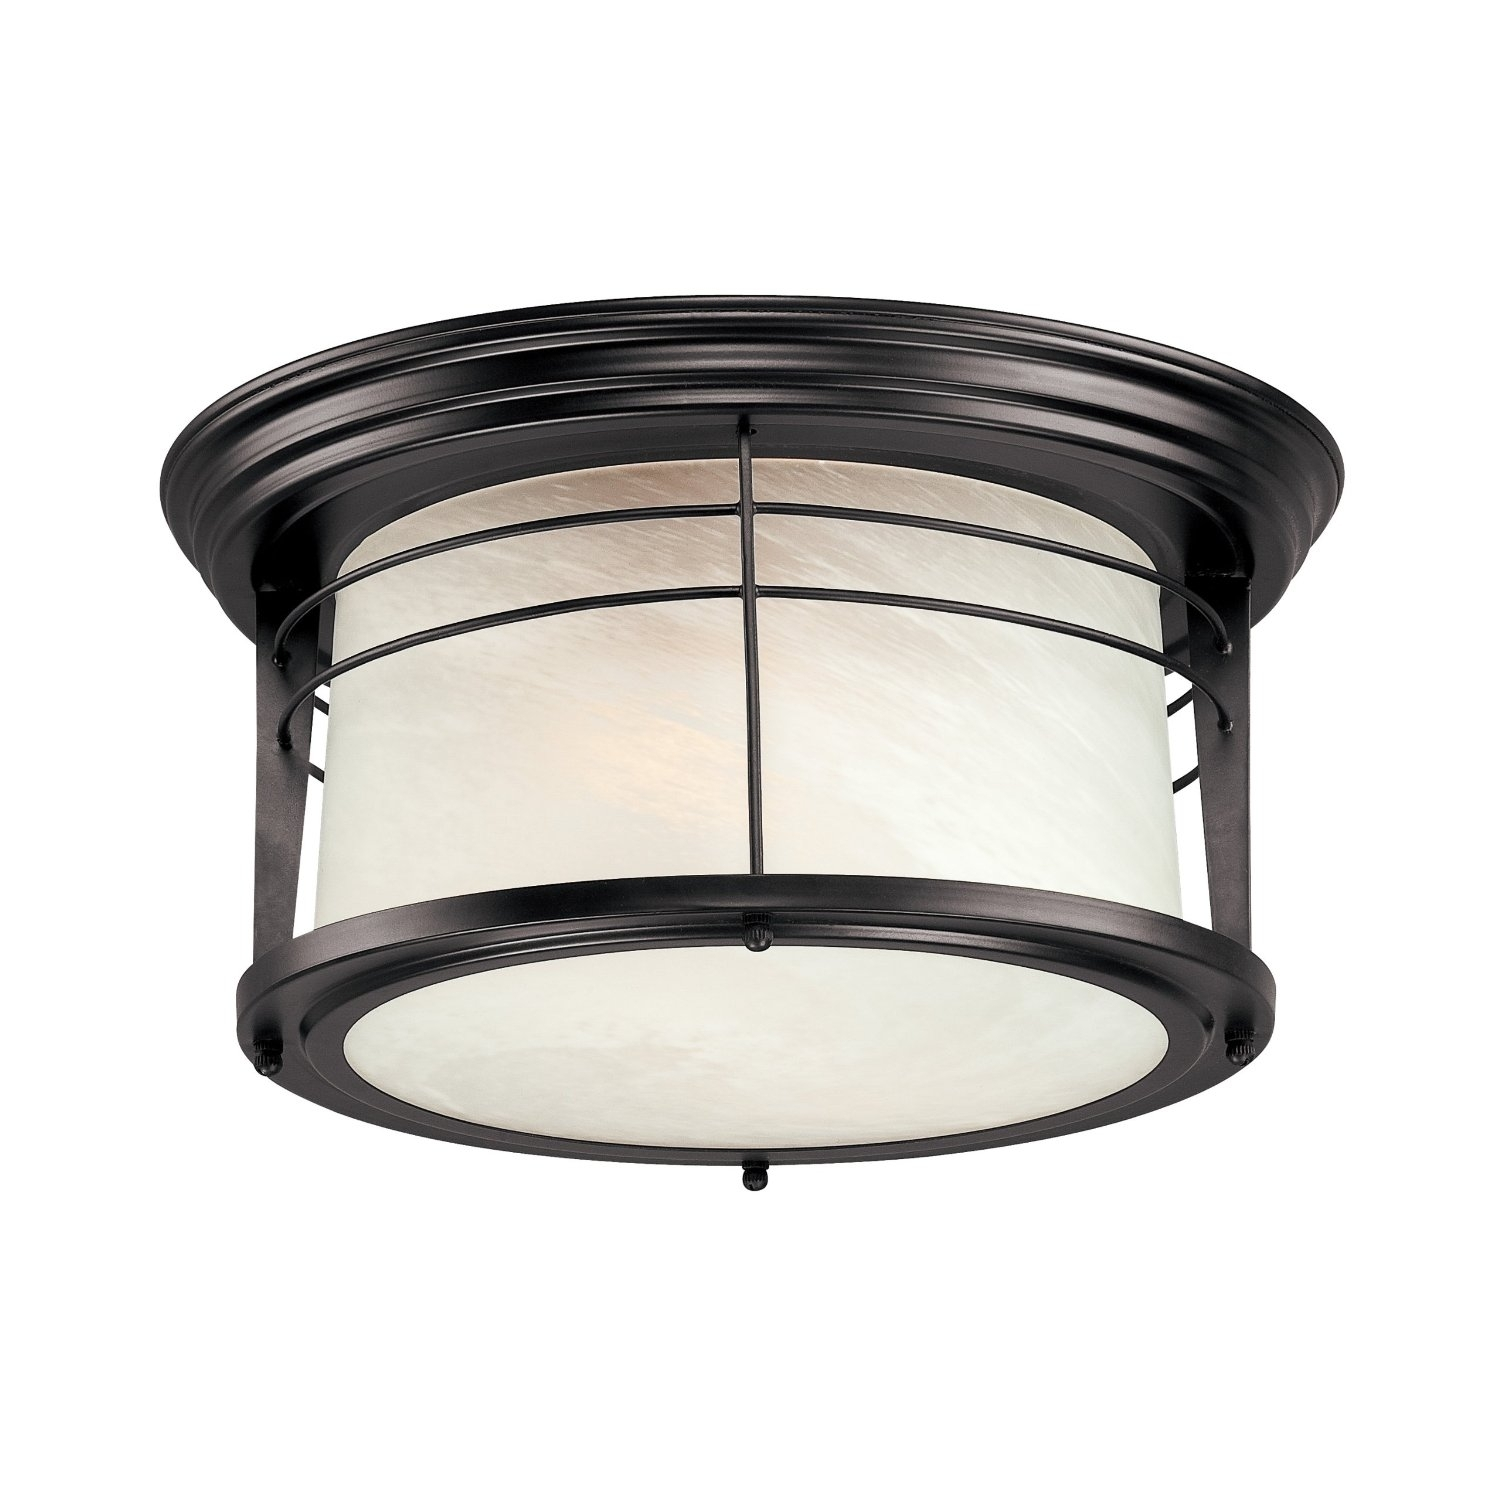 Outdoor Ceiling Mount Motion Light: 21 Terrific Outdoor Motion Intended For Outdoor Ceiling Sensor Lights (#11 of 15)